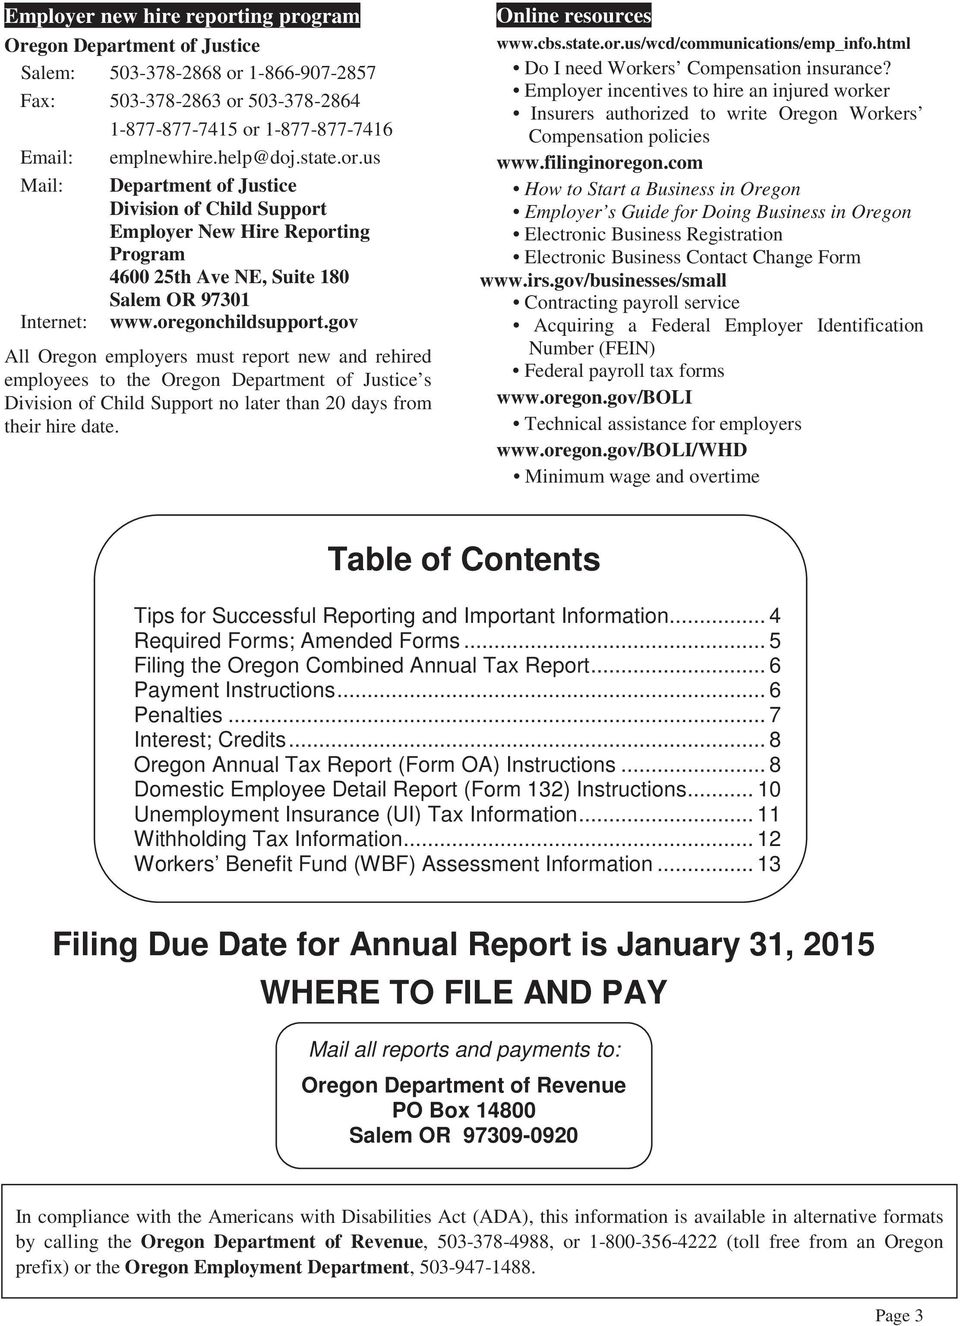 Oregon Department Of Revenue Withholding Tax Tables Jidiletter Co